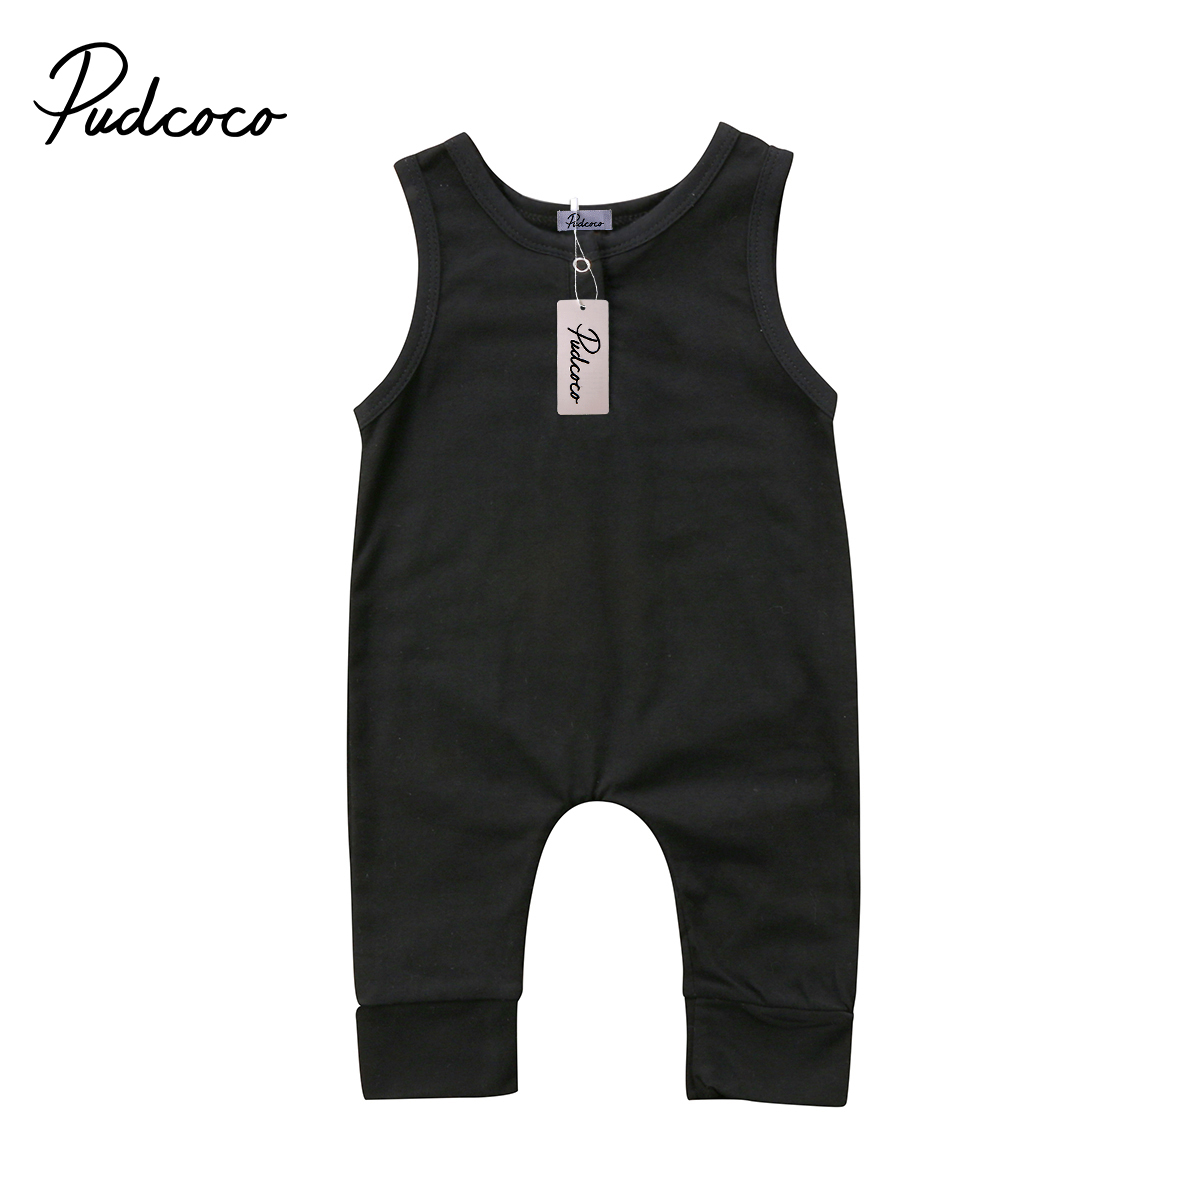 2018 Brand New Newborn Toddler Infant Kids Baby Girls Boys Romper Sleeveless Jumpsuit Harem Pants Clothes Solid Outfits 0-18M newborn baby backless floral jumpsuit infant girls romper sleeveless outfit